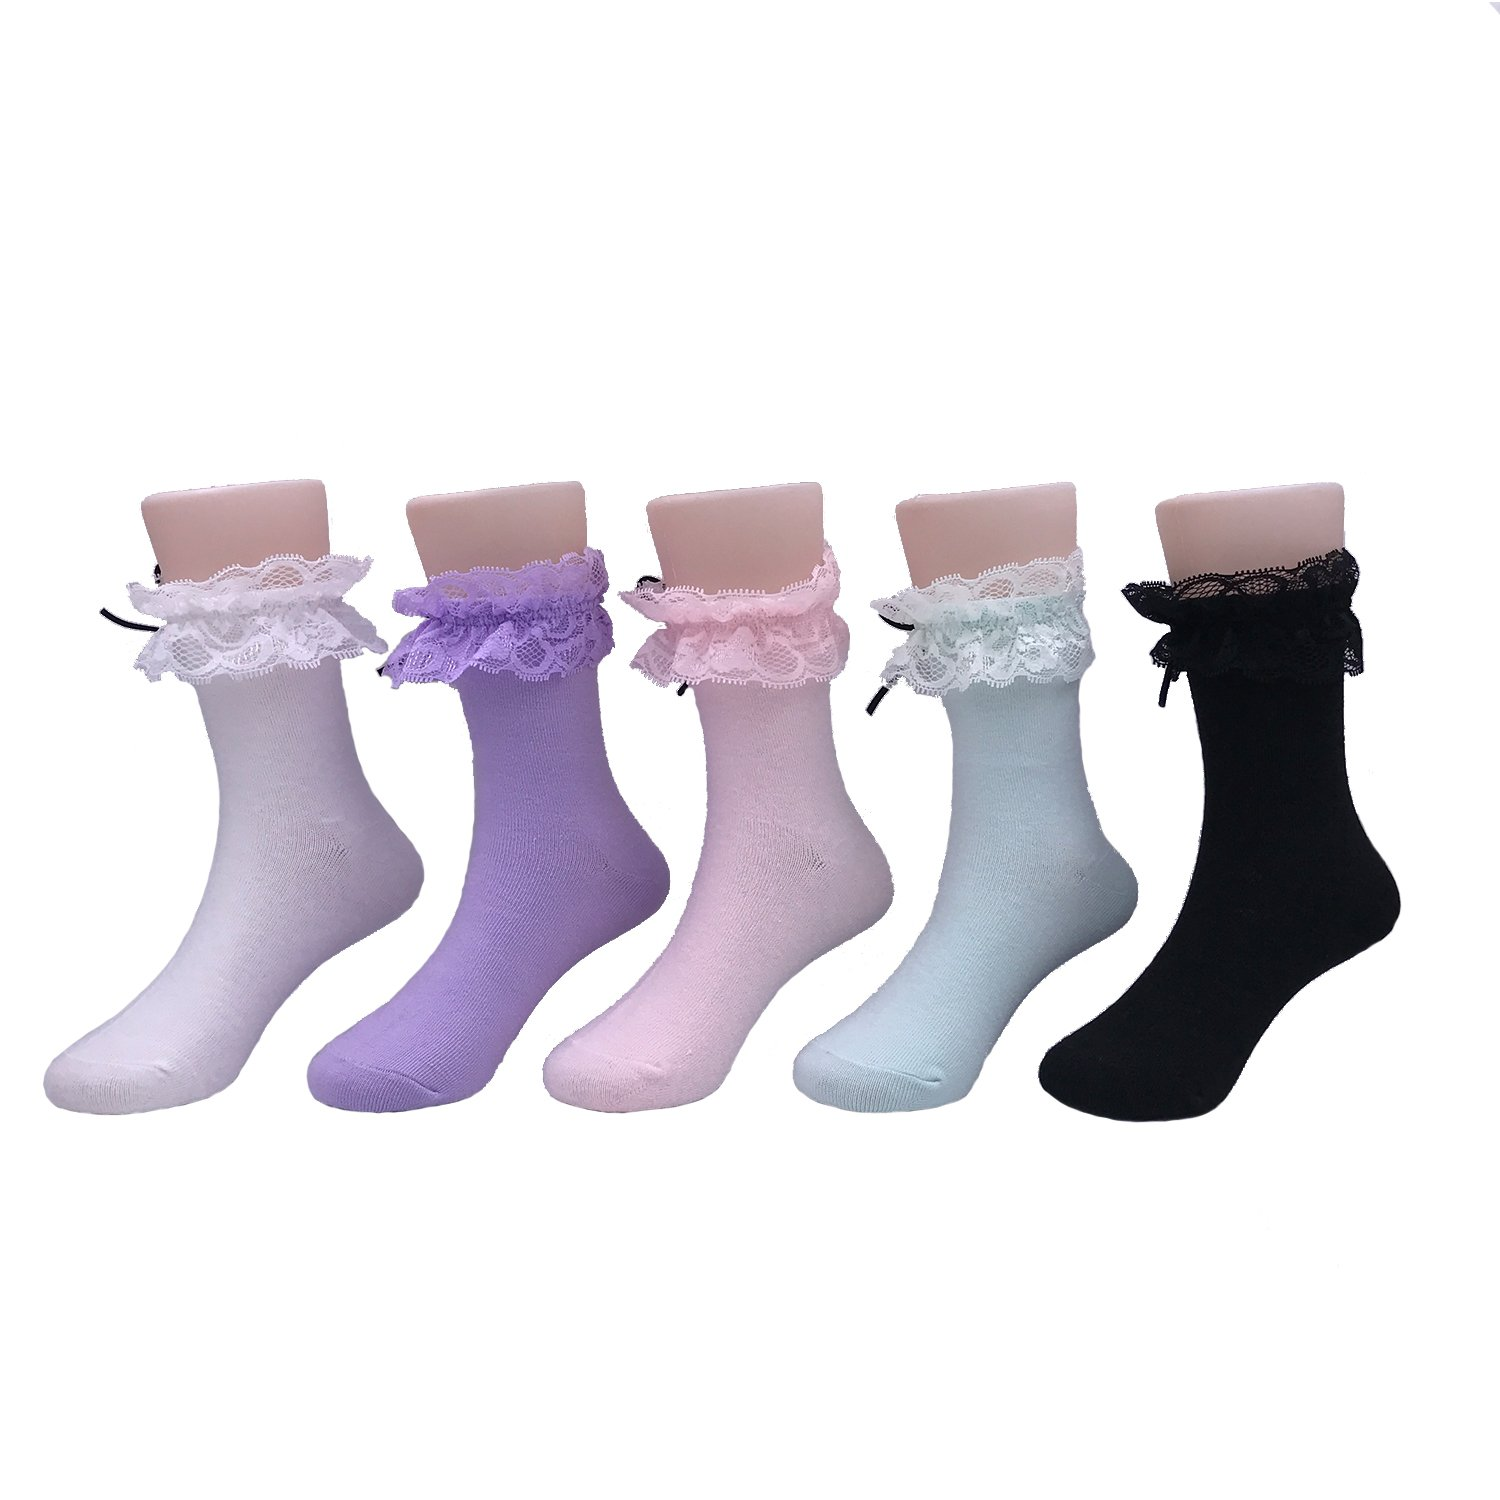 Afom Girls Summer Lace Ruffle Frilly Bowknot Canday Dress Socks 5 Pairs